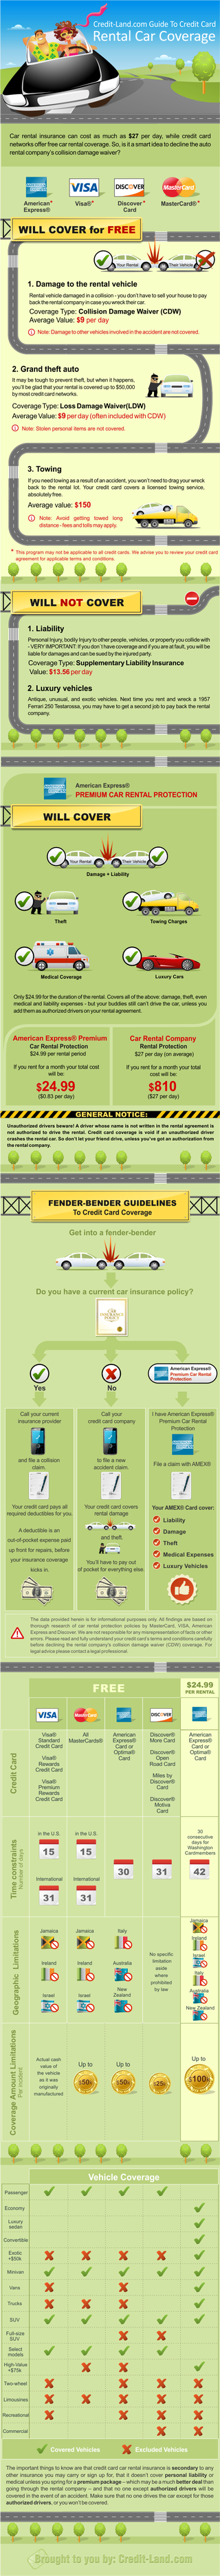 Credit Cards And Car Rental Insurance What S Covered And